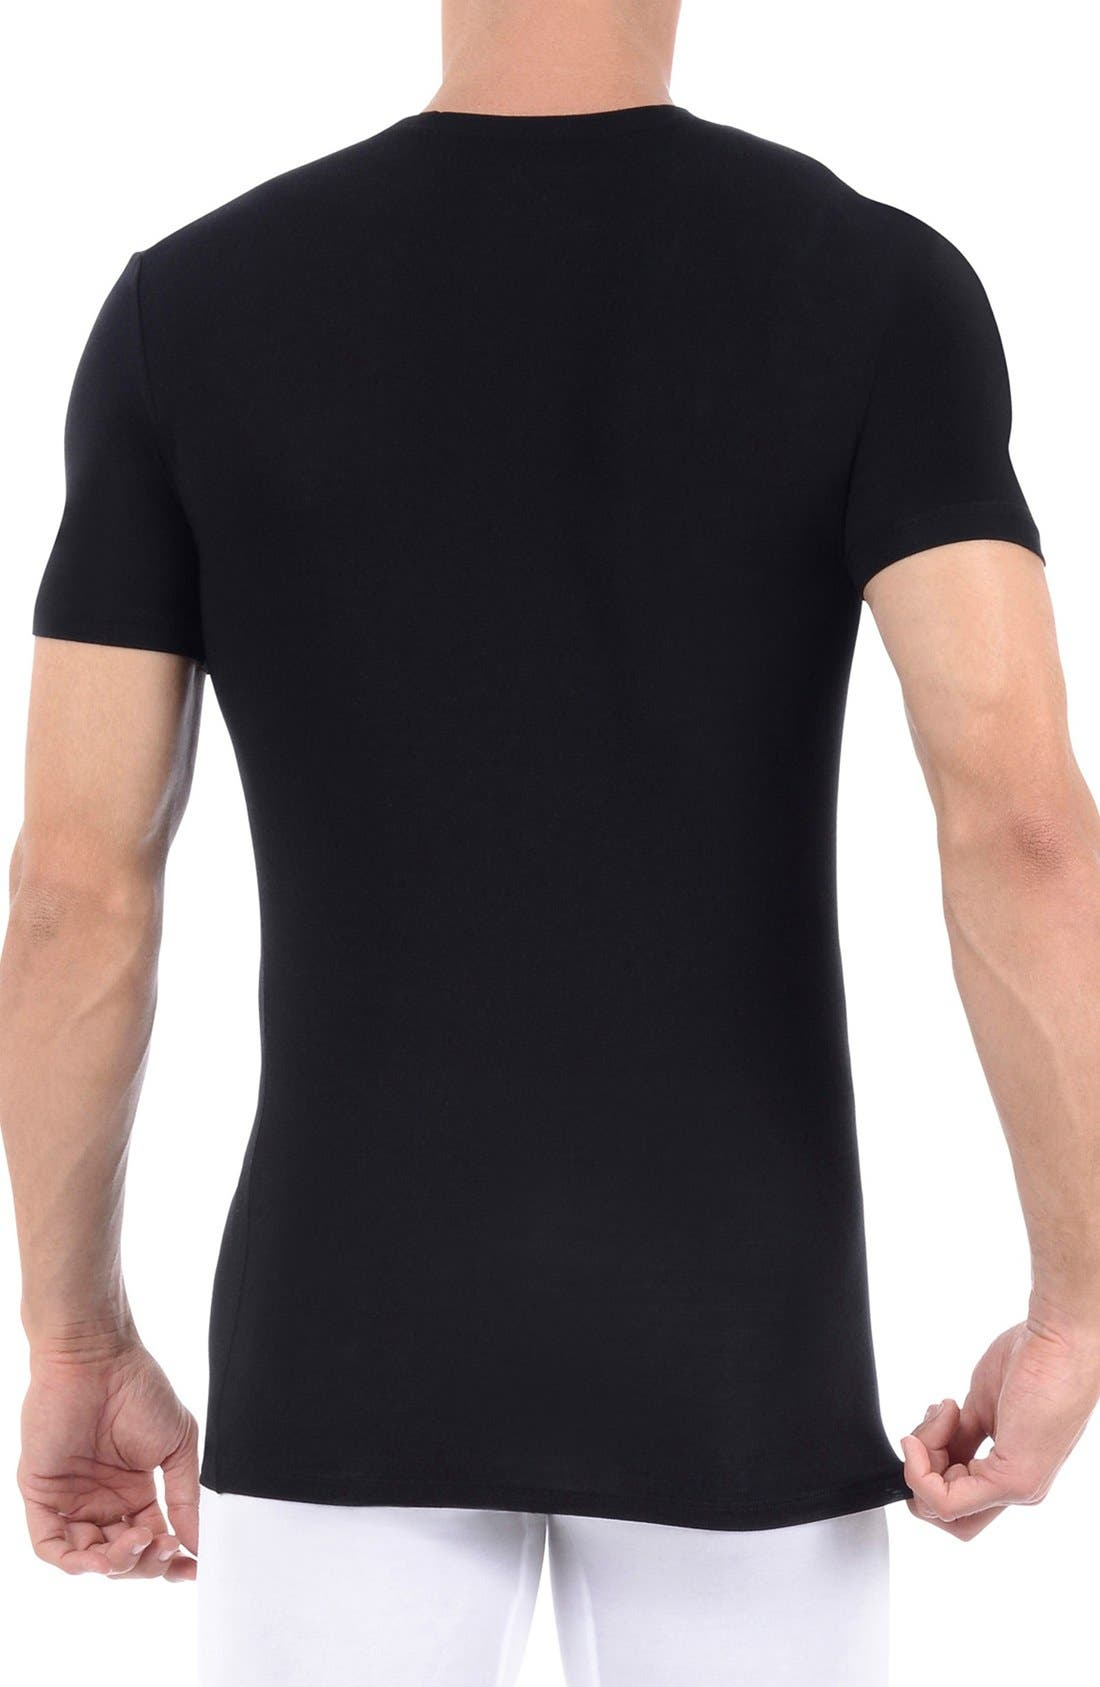 Cool Cotton Crewneck Undershirt,                             Alternate thumbnail 2, color,                             BLACK